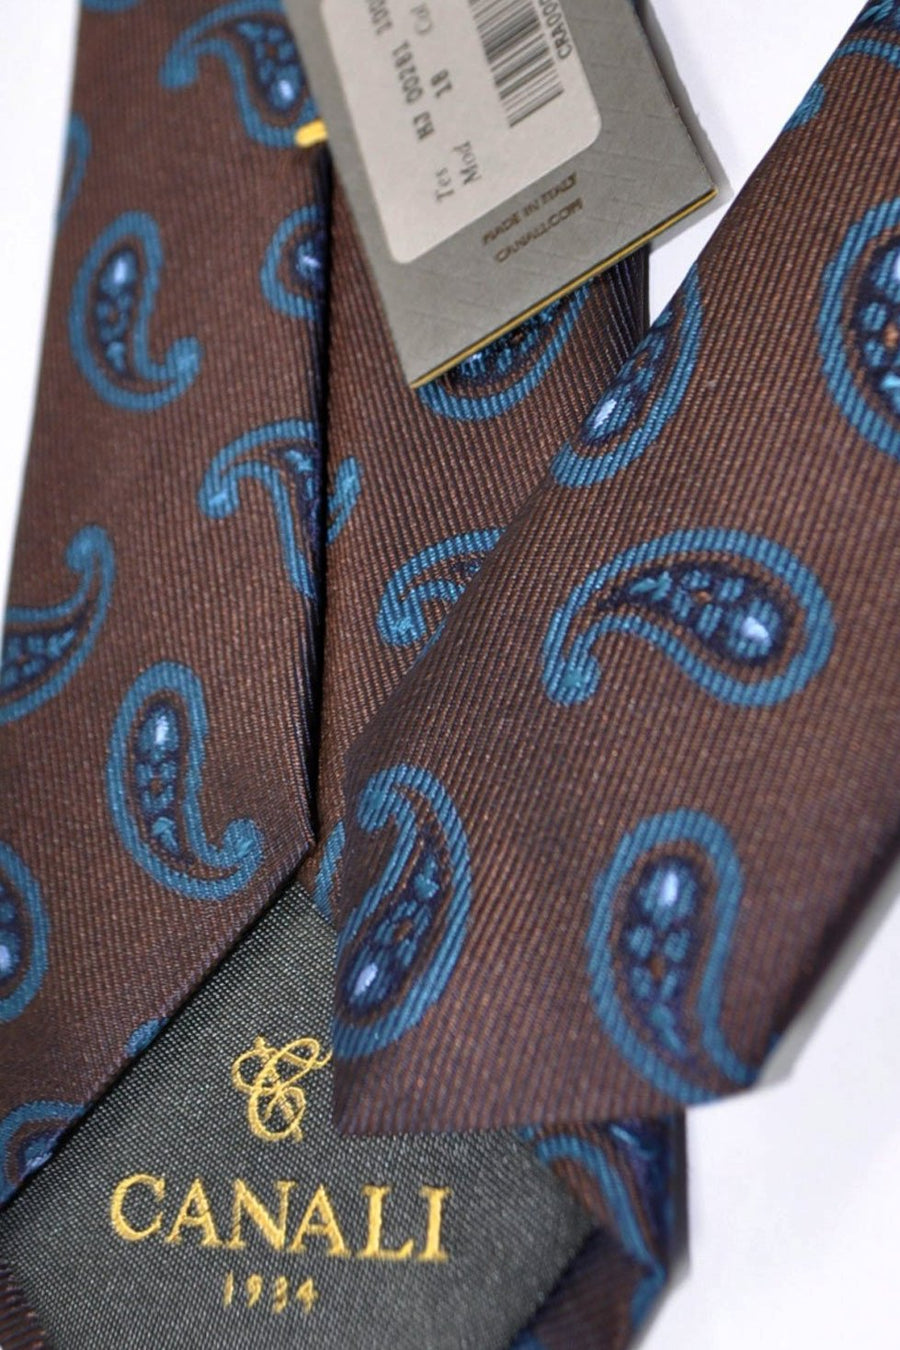 Canali Silk Tie Brown Teal Paisley Design FINAL SALE